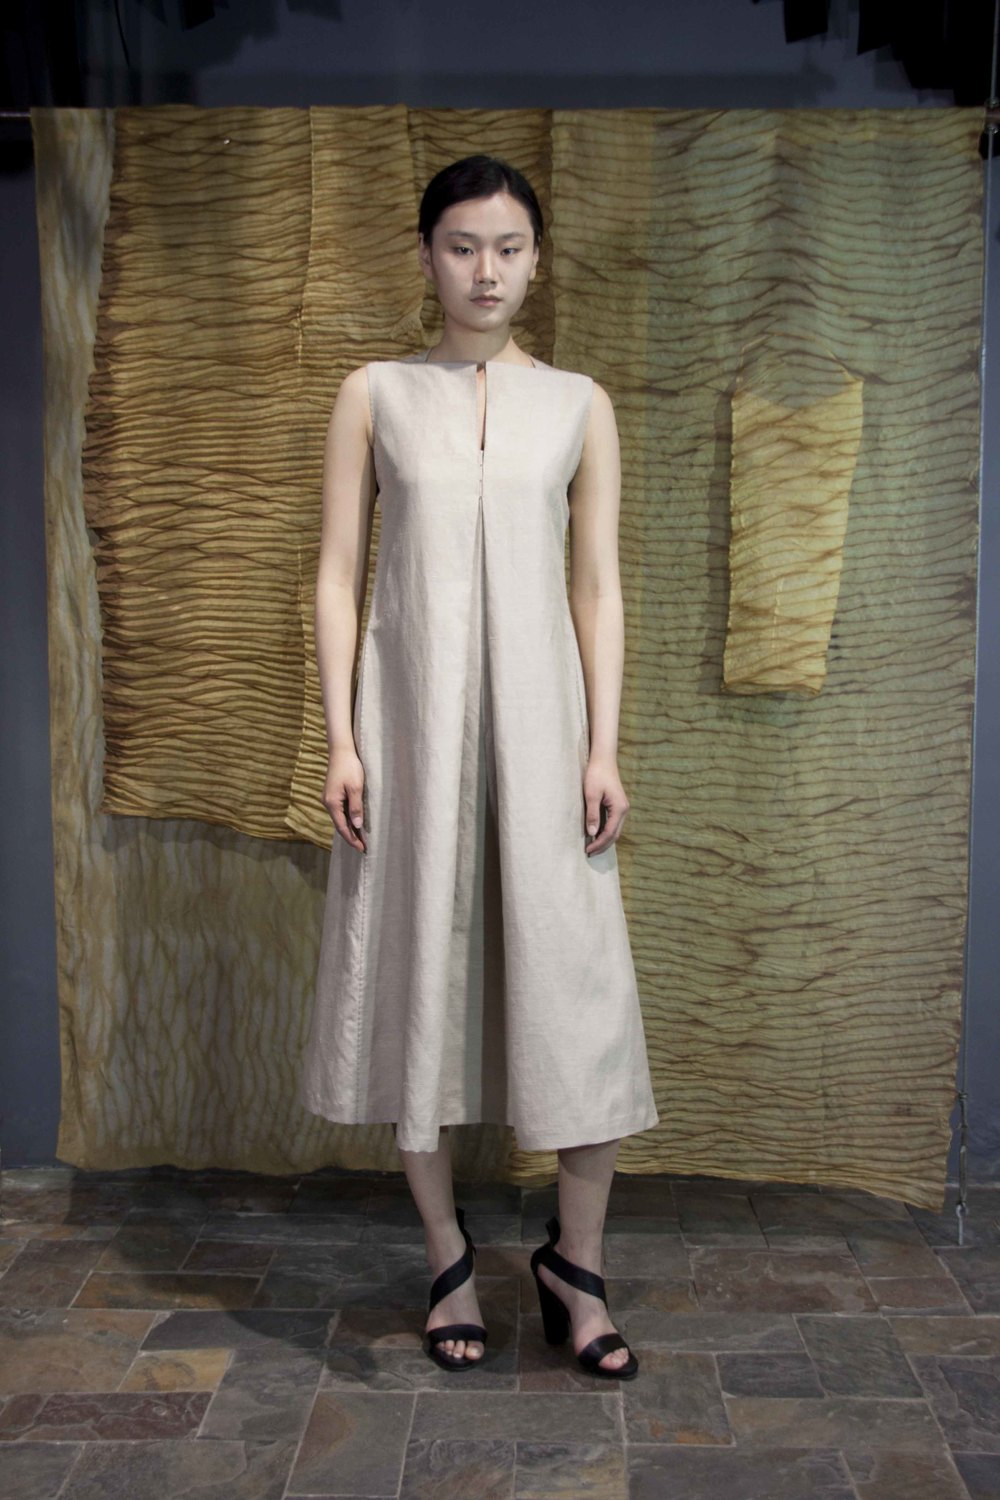 "28-32 Silk-linen loose dress  /    丝麻宽松款连衣裙                                                                                                                                                                                                                                                                                                   /* Style Definitions */  table.MsoNormalTable 	{mso-style-name:""Table Normal""; 	mso-tstyle-rowband-size:0; 	mso-tstyle-colband-size:0; 	mso-style-noshow:yes; 	mso-style-priority:99; 	mso-style-qformat:yes; 	mso-style-parent:""""; 	mso-padding-alt:0in 5.4pt 0in 5.4pt; 	mso-para-margin-top:0in; 	mso-para-margin-right:0in; 	mso-para-margin-bottom:10.0pt; 	mso-para-margin-left:0in; 	line-height:115%; 	mso-pagination:widow-orphan; 	font-size:11.0pt; 	font-family:""Calibri"",""sans-serif""; 	mso-ascii-font-family:Calibri; 	mso-ascii-theme-font:minor-latin; 	mso-hansi-font-family:Calibri; 	mso-hansi-theme-font:minor-latin; 	mso-bidi-font-family:""Times New Roman""; 	mso-bidi-theme-font:minor-bidi;}"